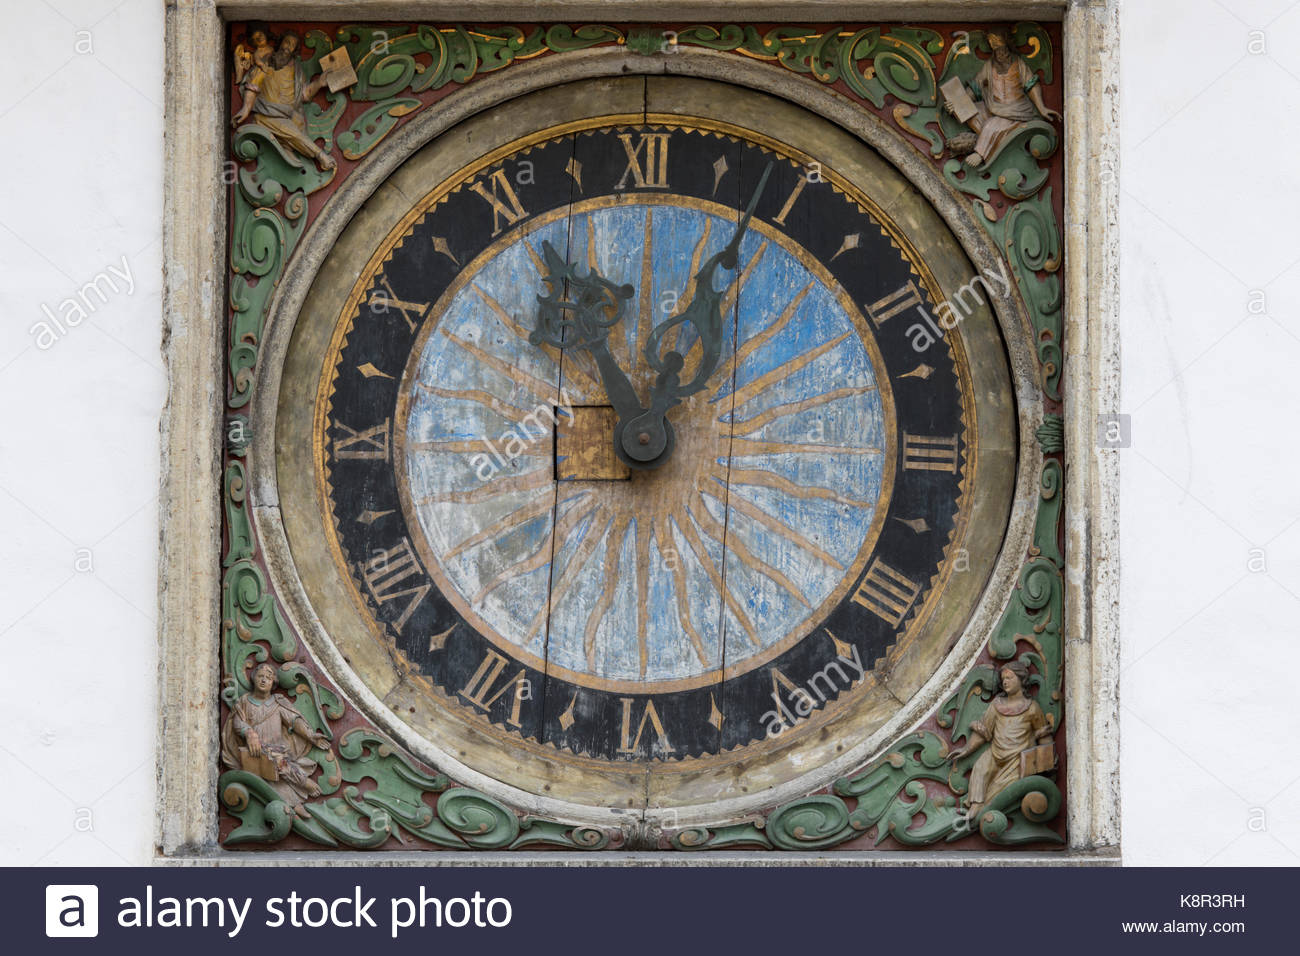 17th century clock with golden sun motif on facade of the Church of the Holy Ghost, Old Town, Tallinn, Estonia, - Stock Image